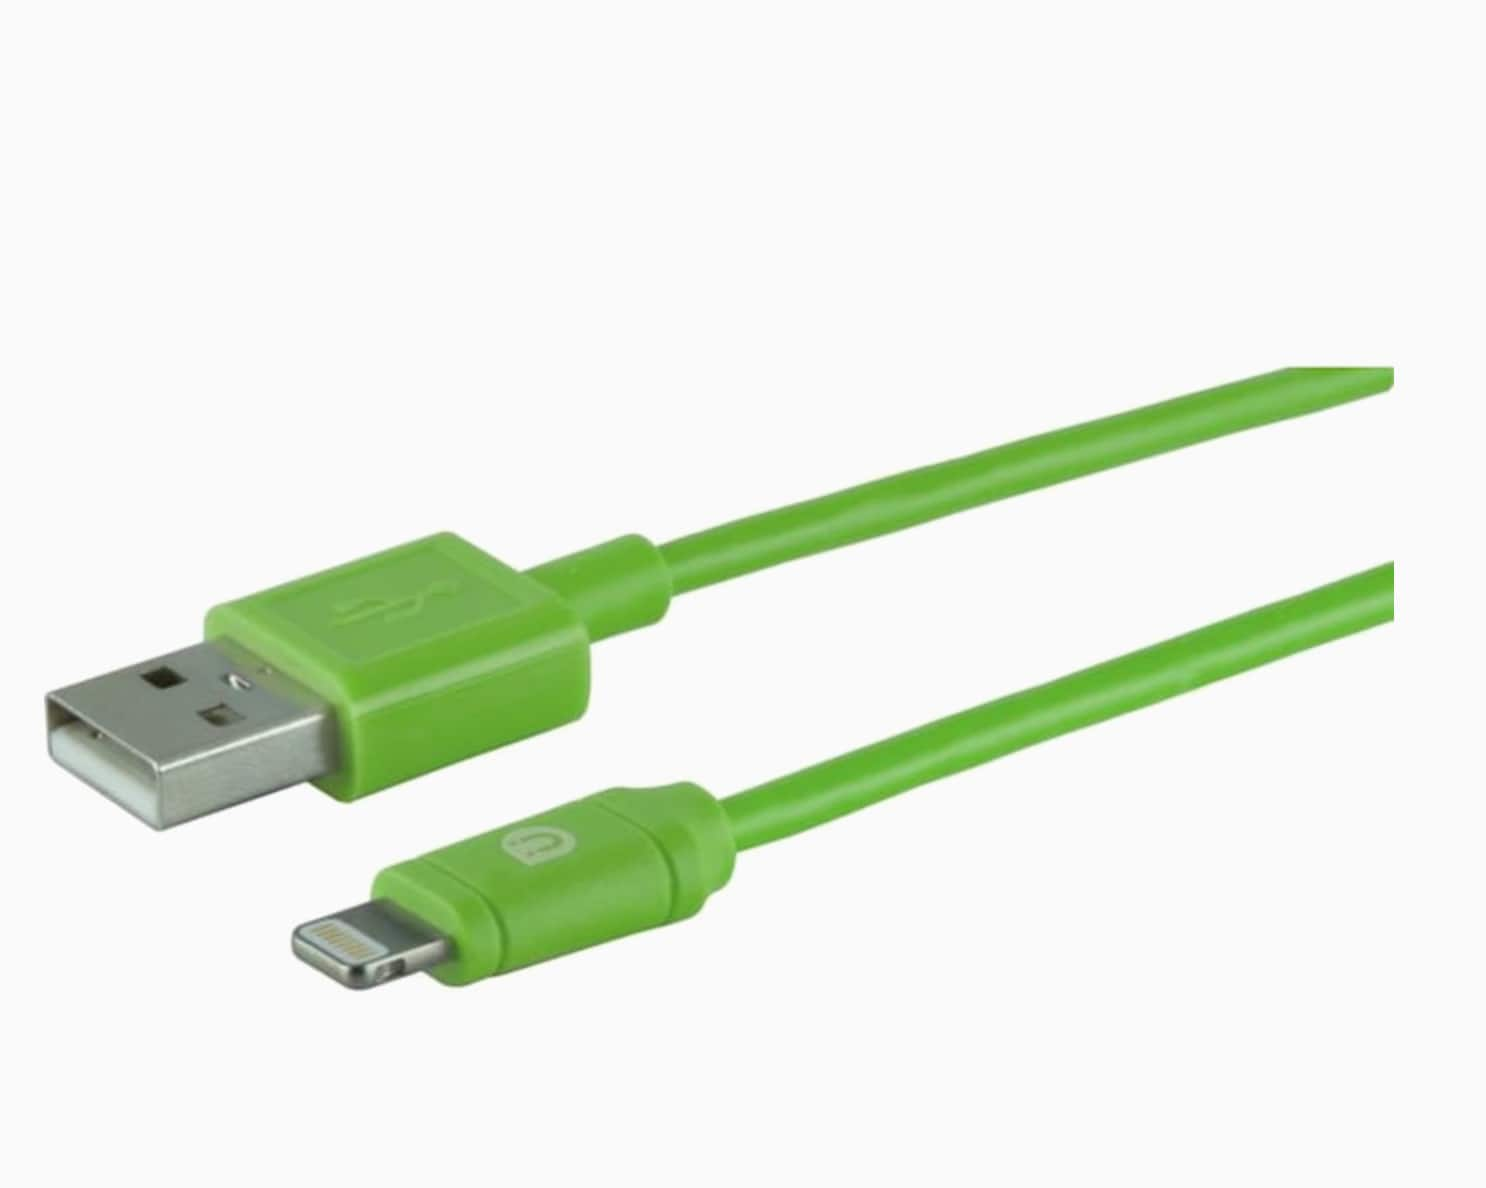 uber 4 ft lighting cable lowes YMMV $1.06